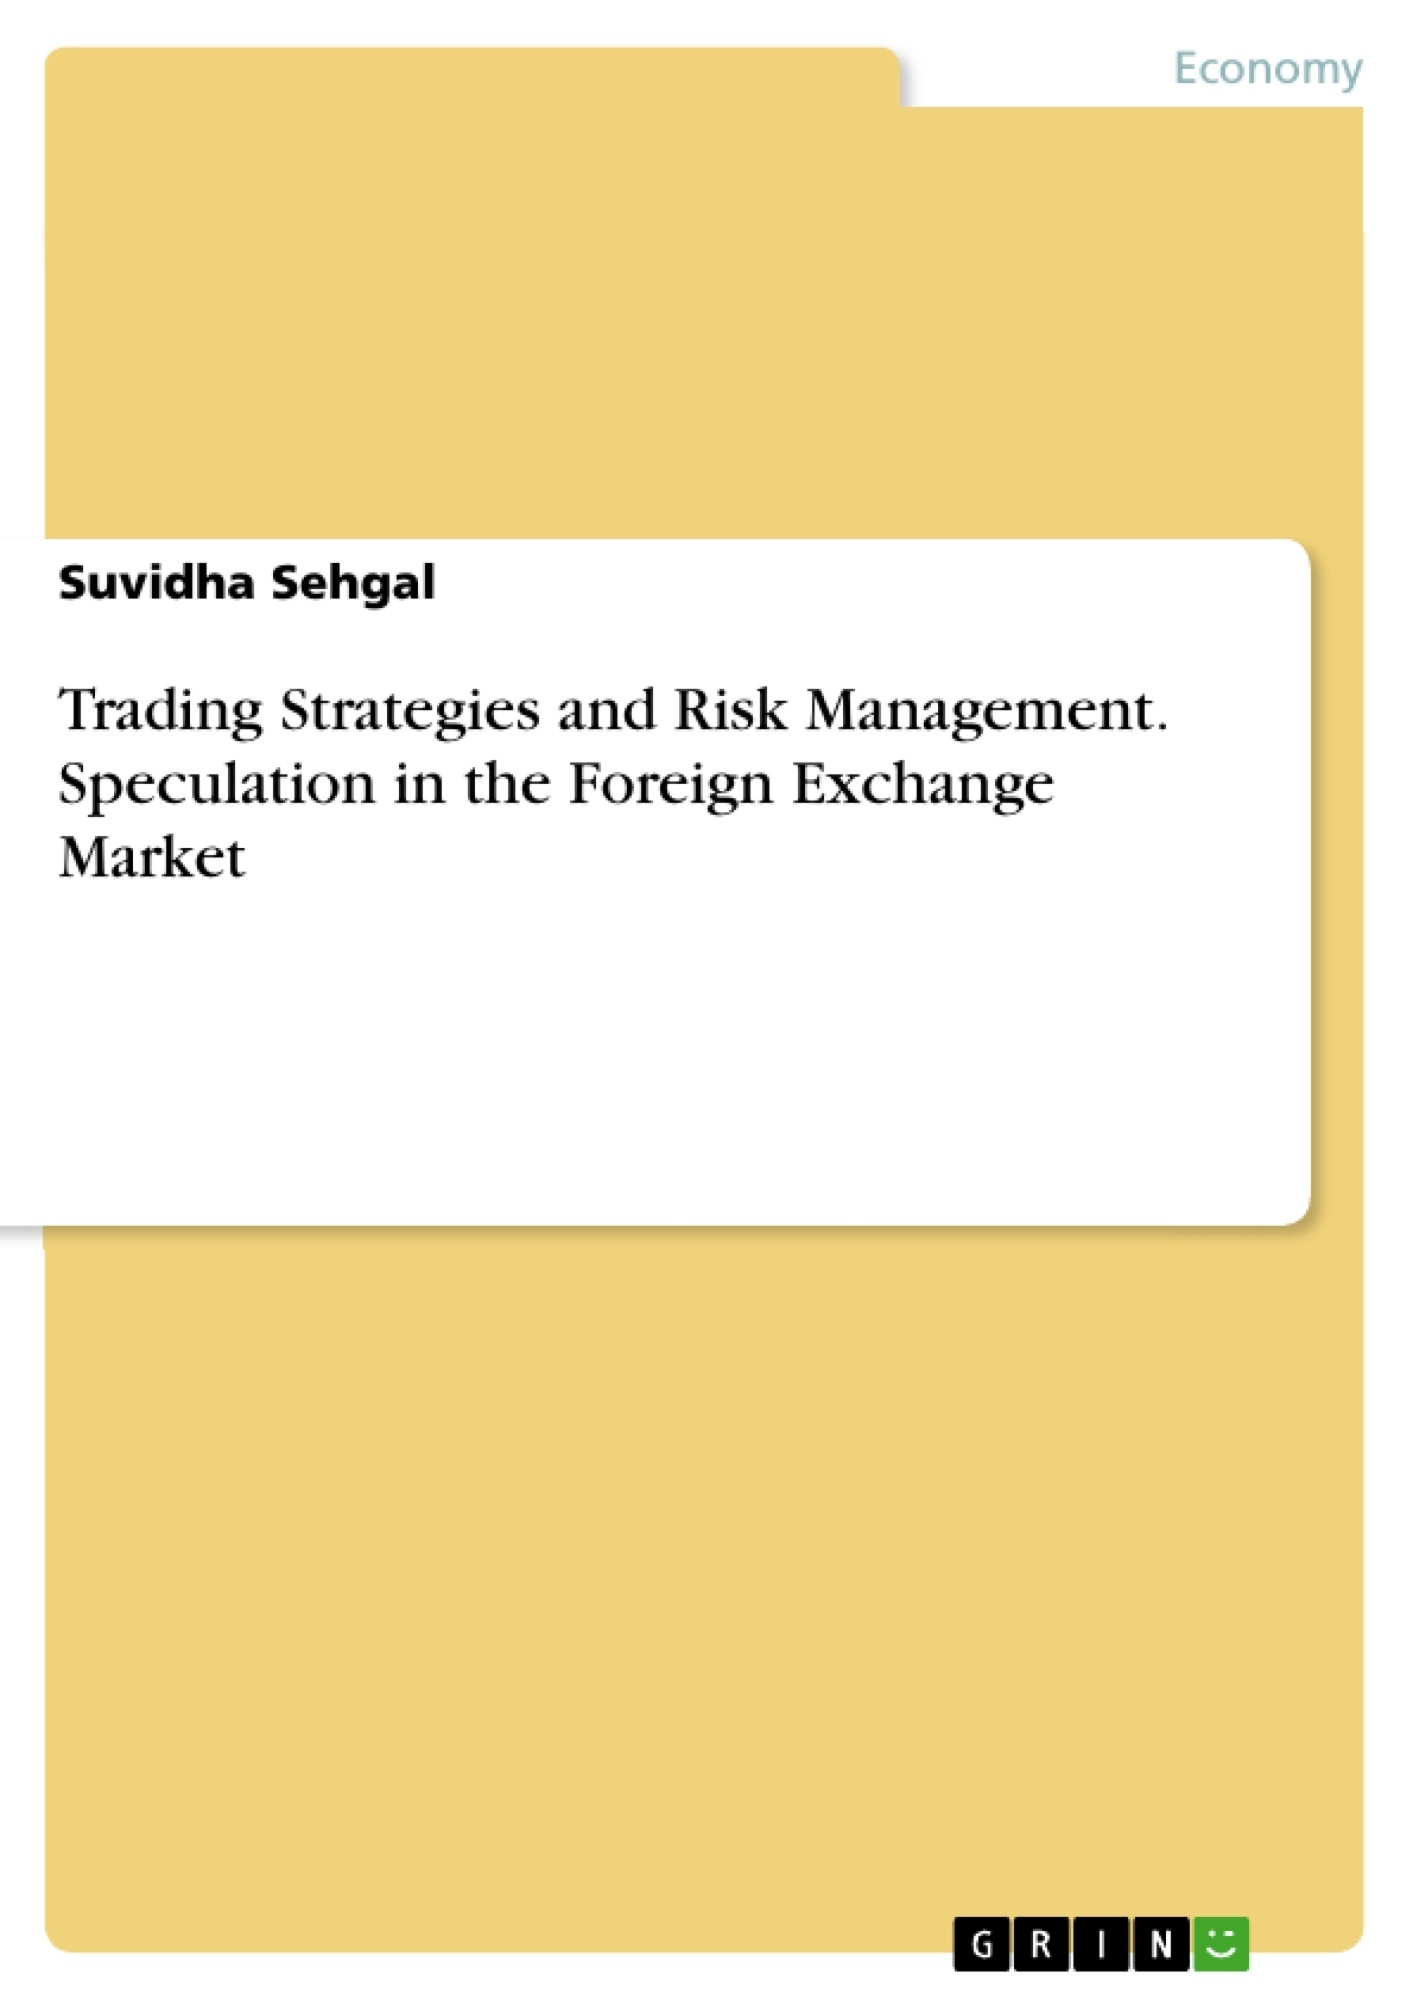 Title: Trading Strategies and Risk Management. Speculation in the Foreign Exchange Market